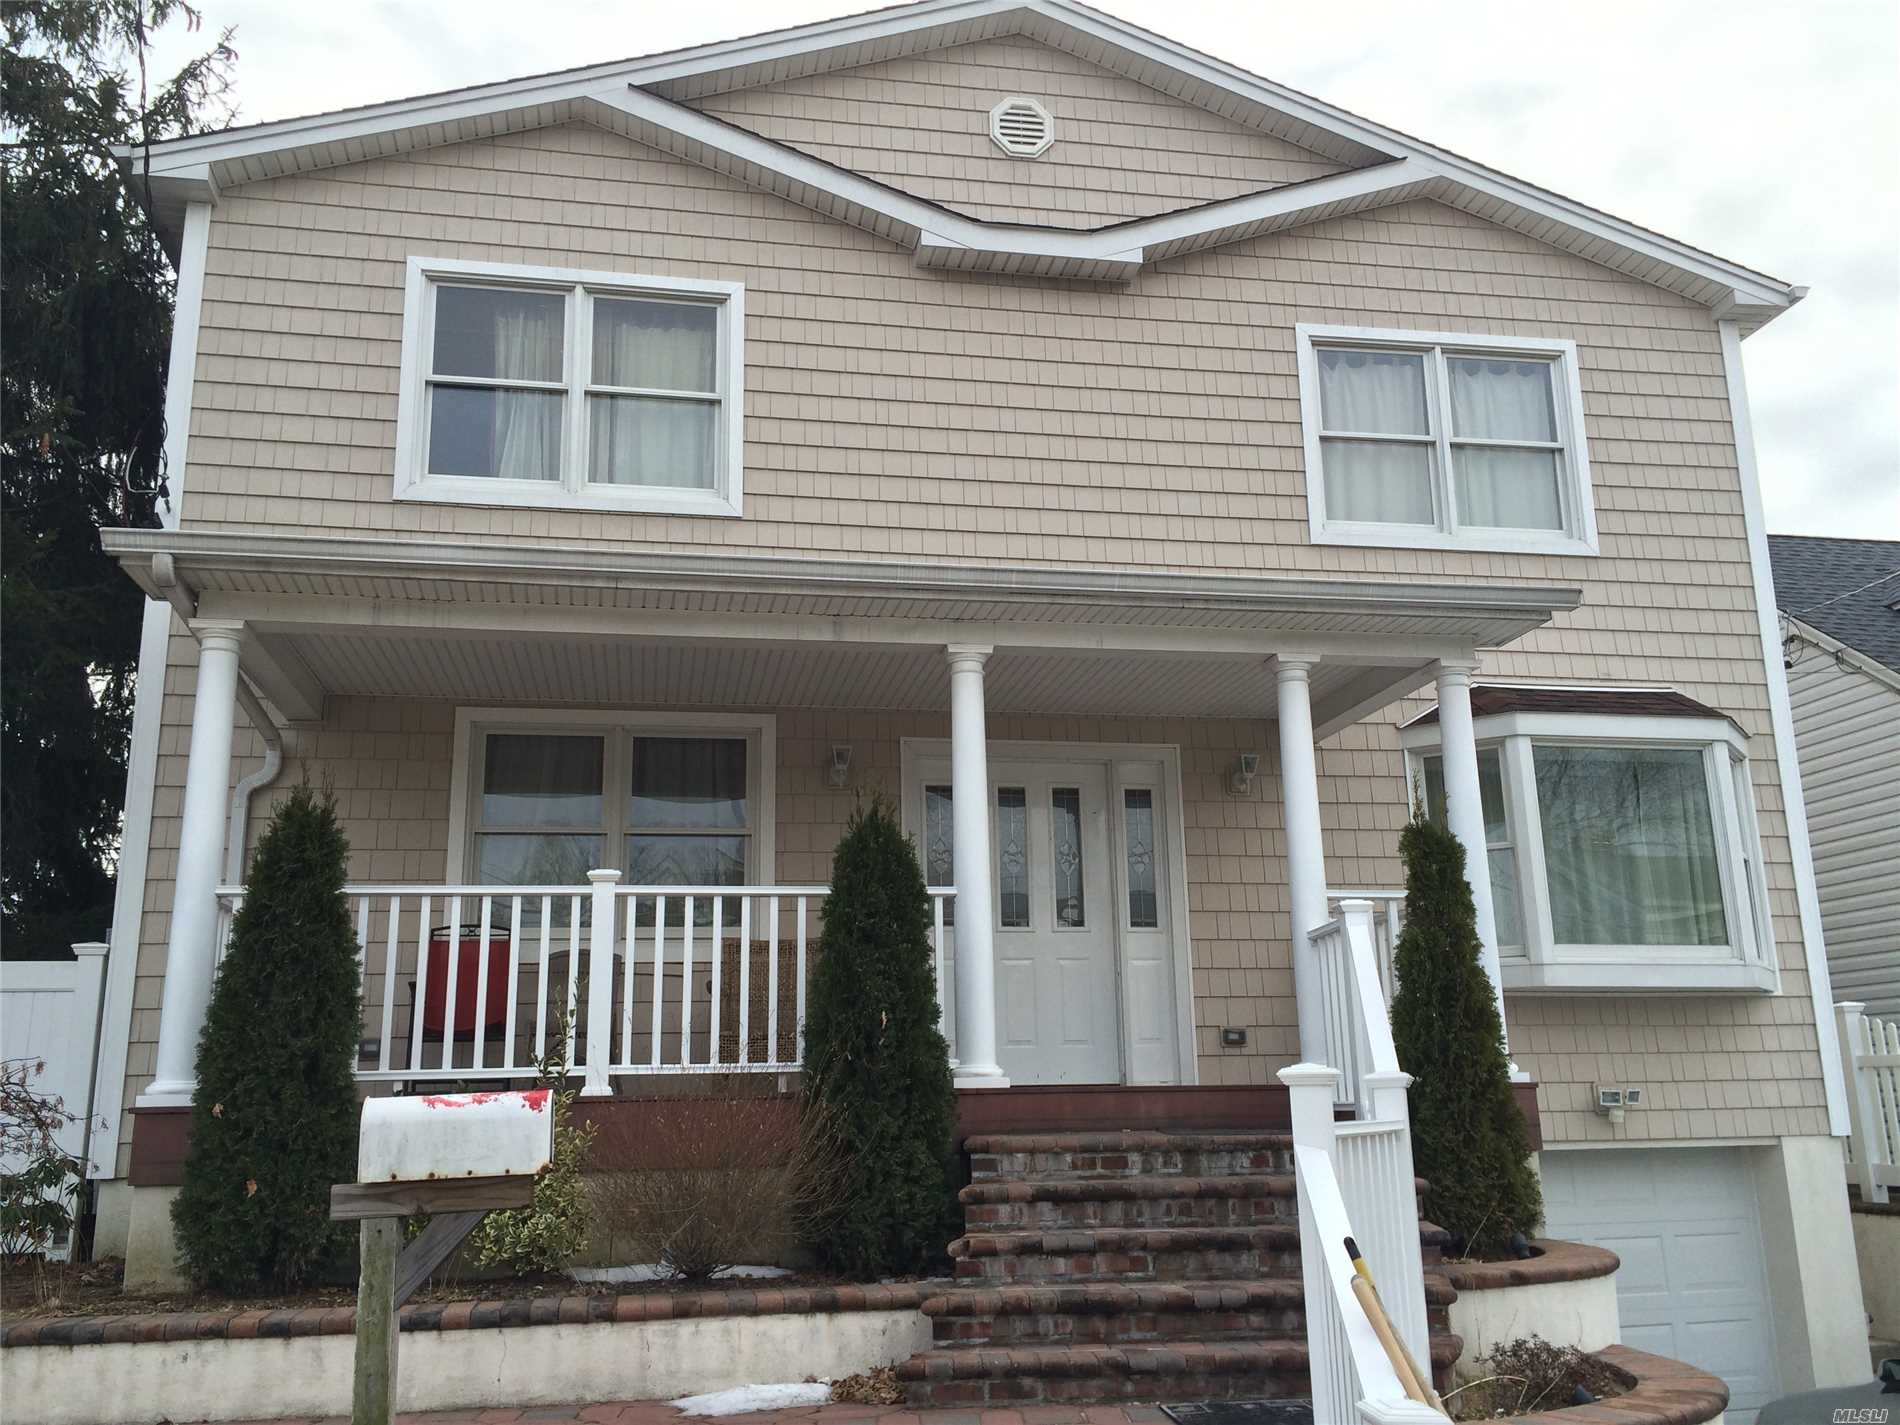 5 Bed, 4 Full Bath, Full Finished Basement. Everything Was Redone 9 Years Ago. Wood Floors, Granite Countertops And Stainless Appliances In Kitchen , Gas Fireplace In Den, Laundry On First Floor, Cac,  Garage. Must See!!!